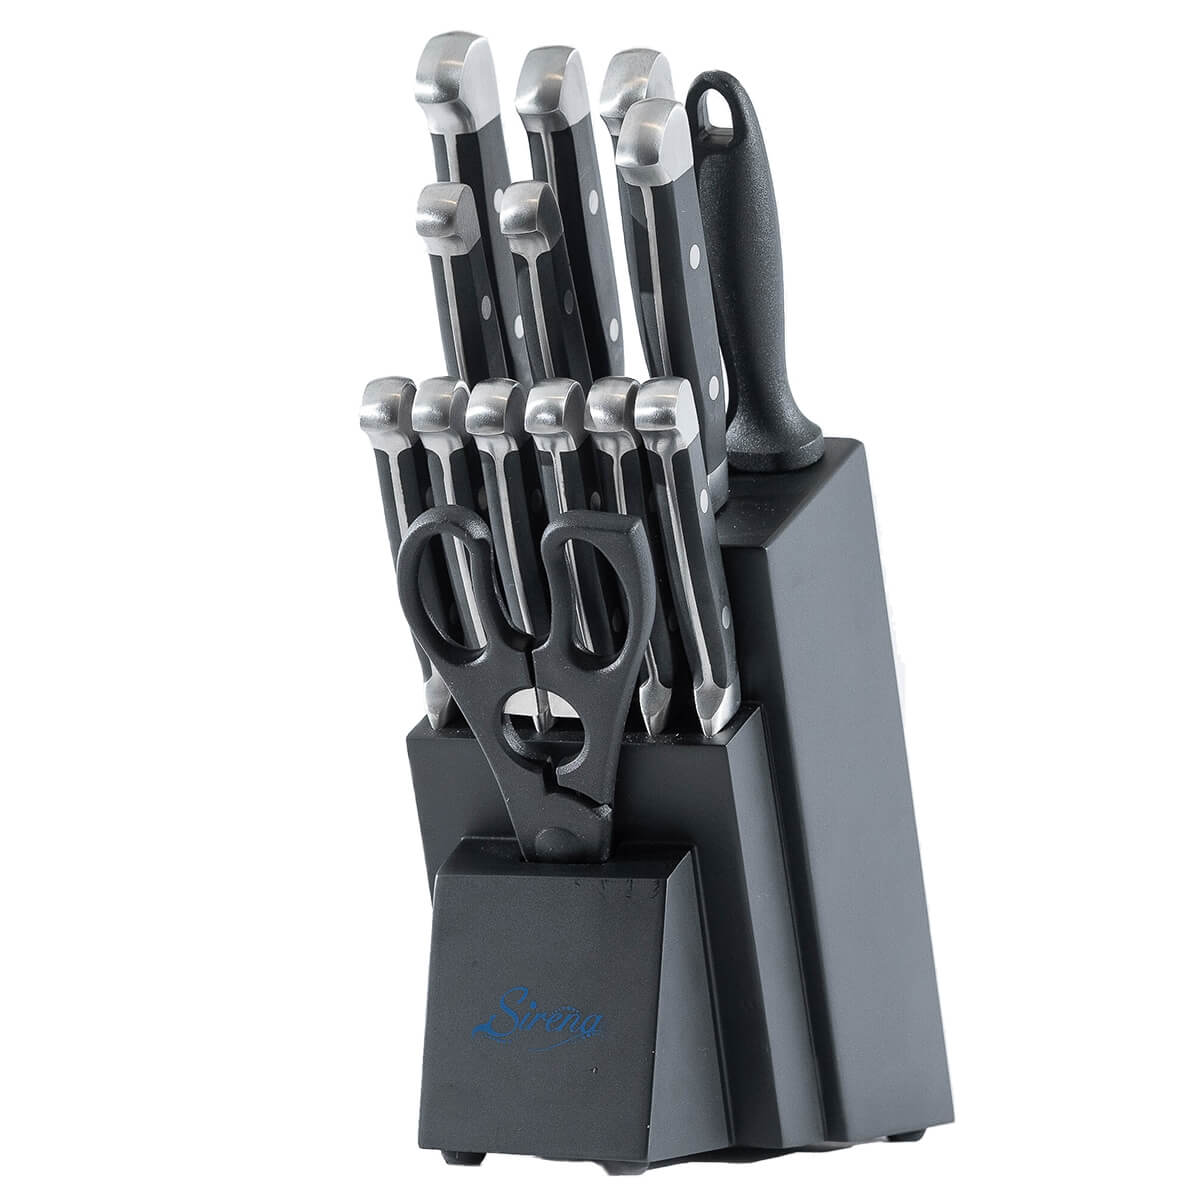 Sirena Elite Knife Set in universal storage block